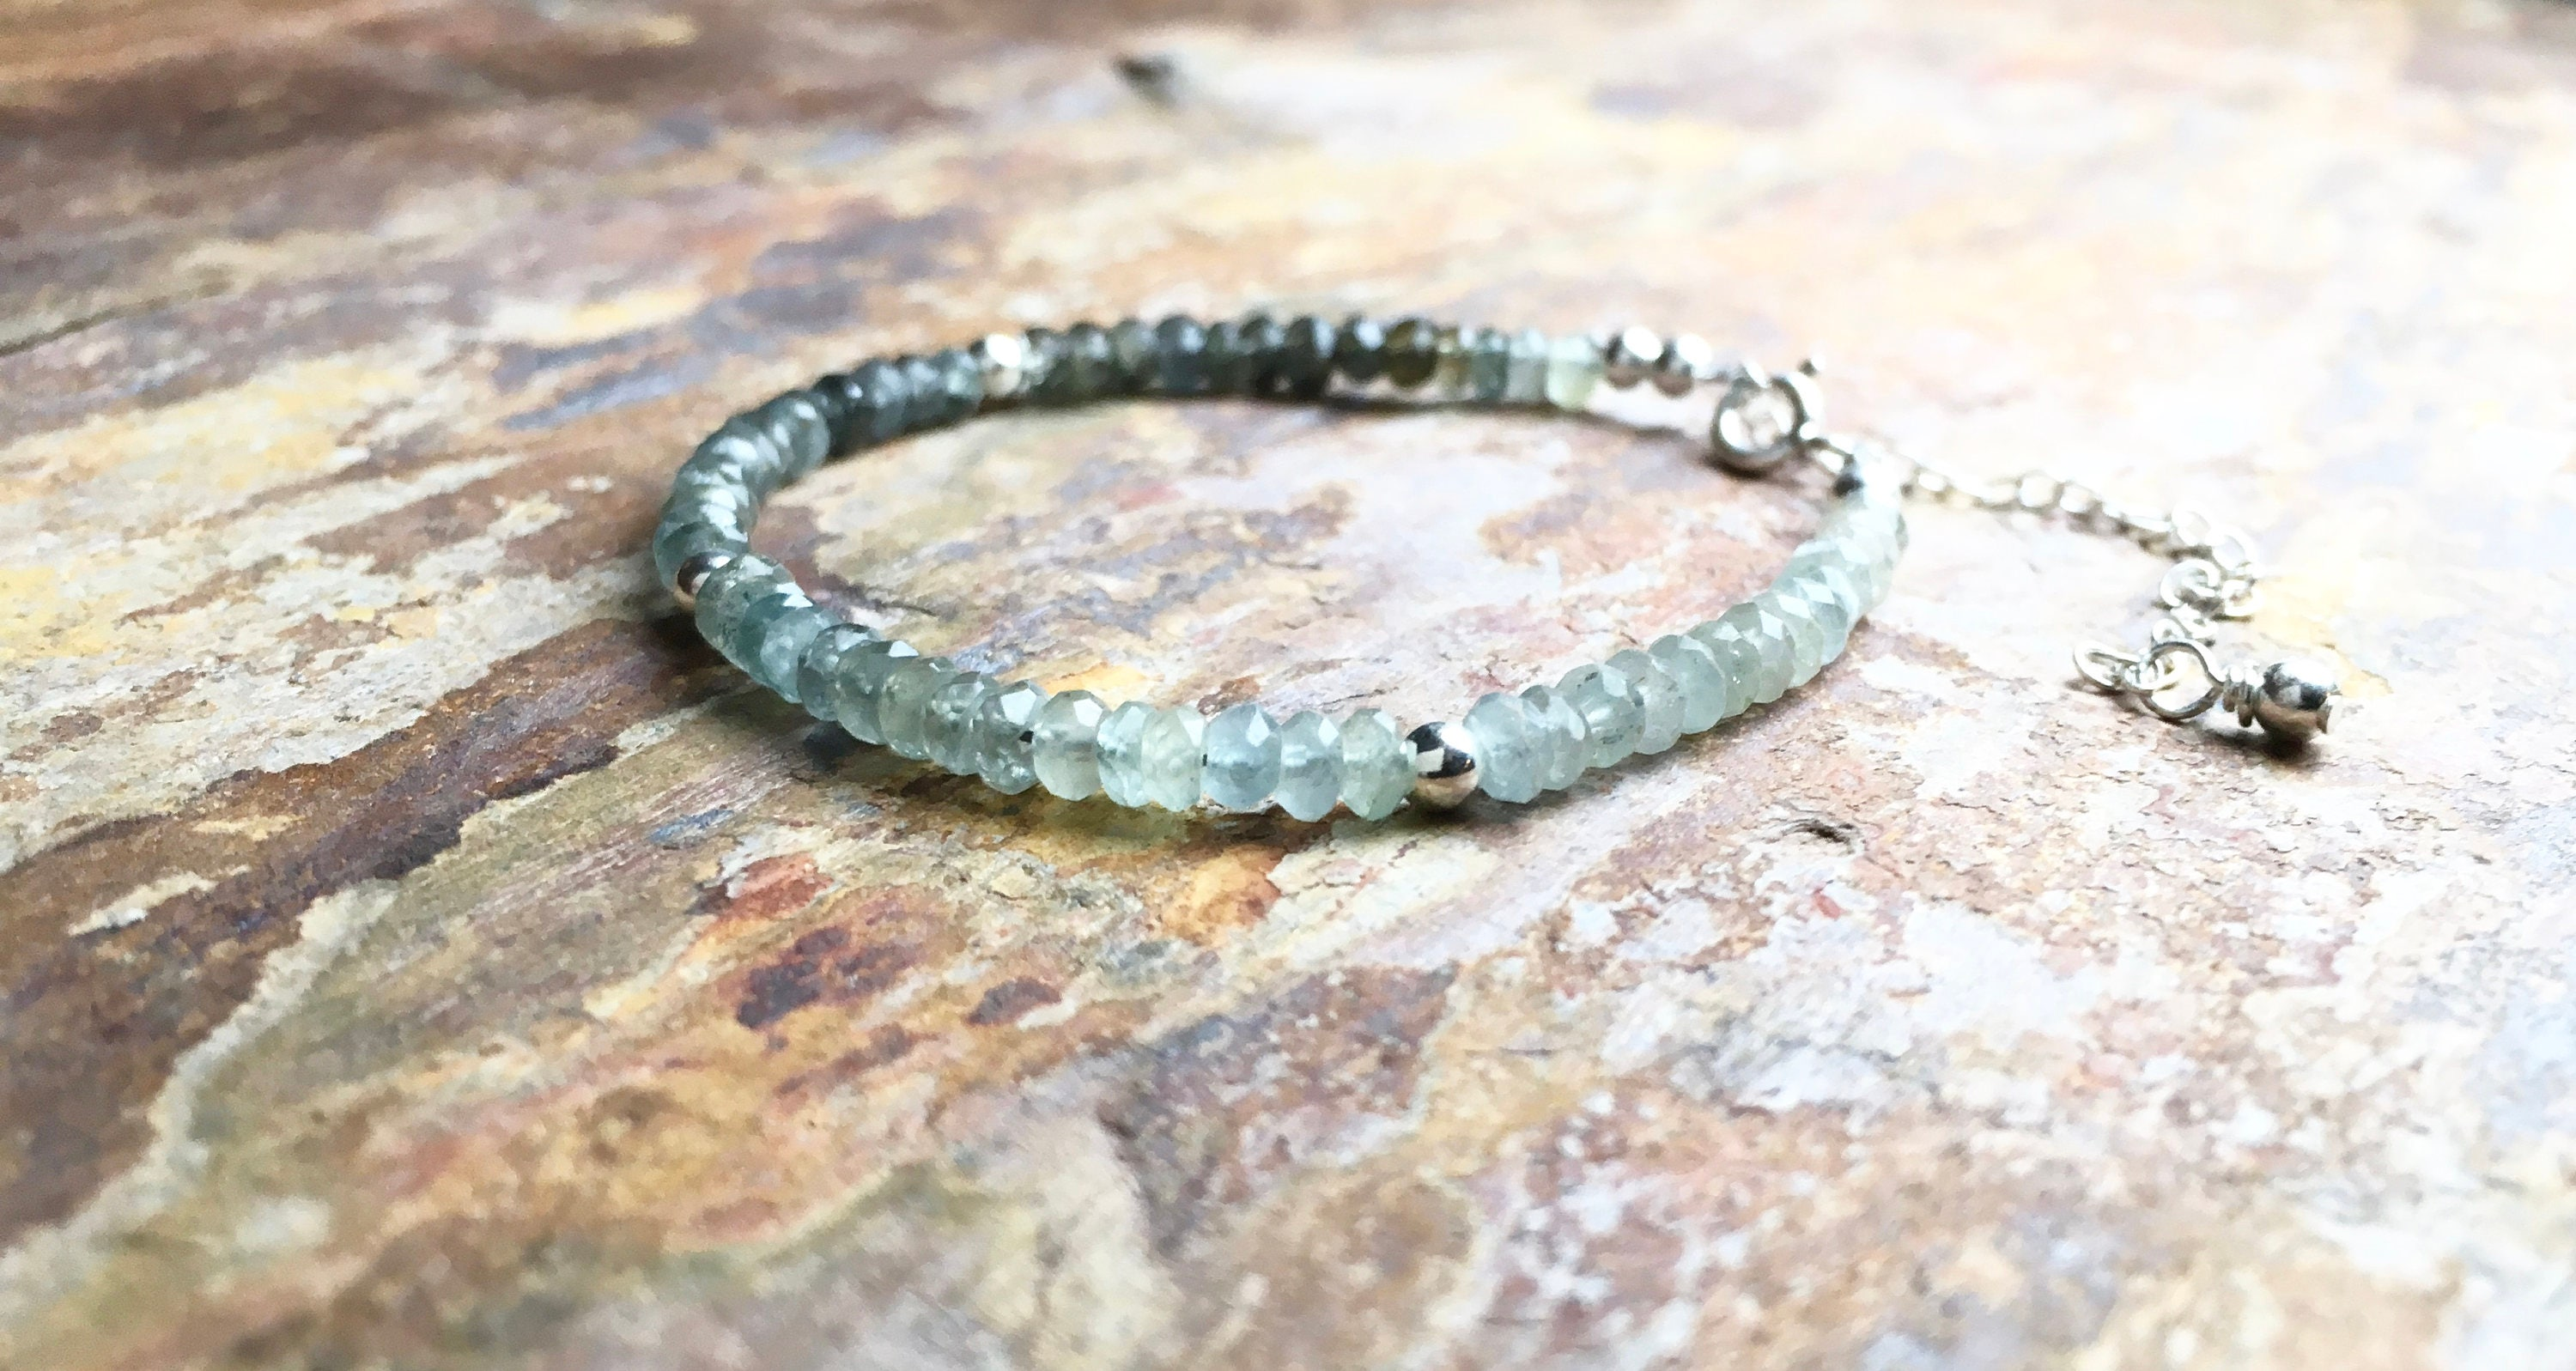 silver vassonite chain stunning aquamarine beautiful adorned with bracelet apatite anklet a idocrase and pin